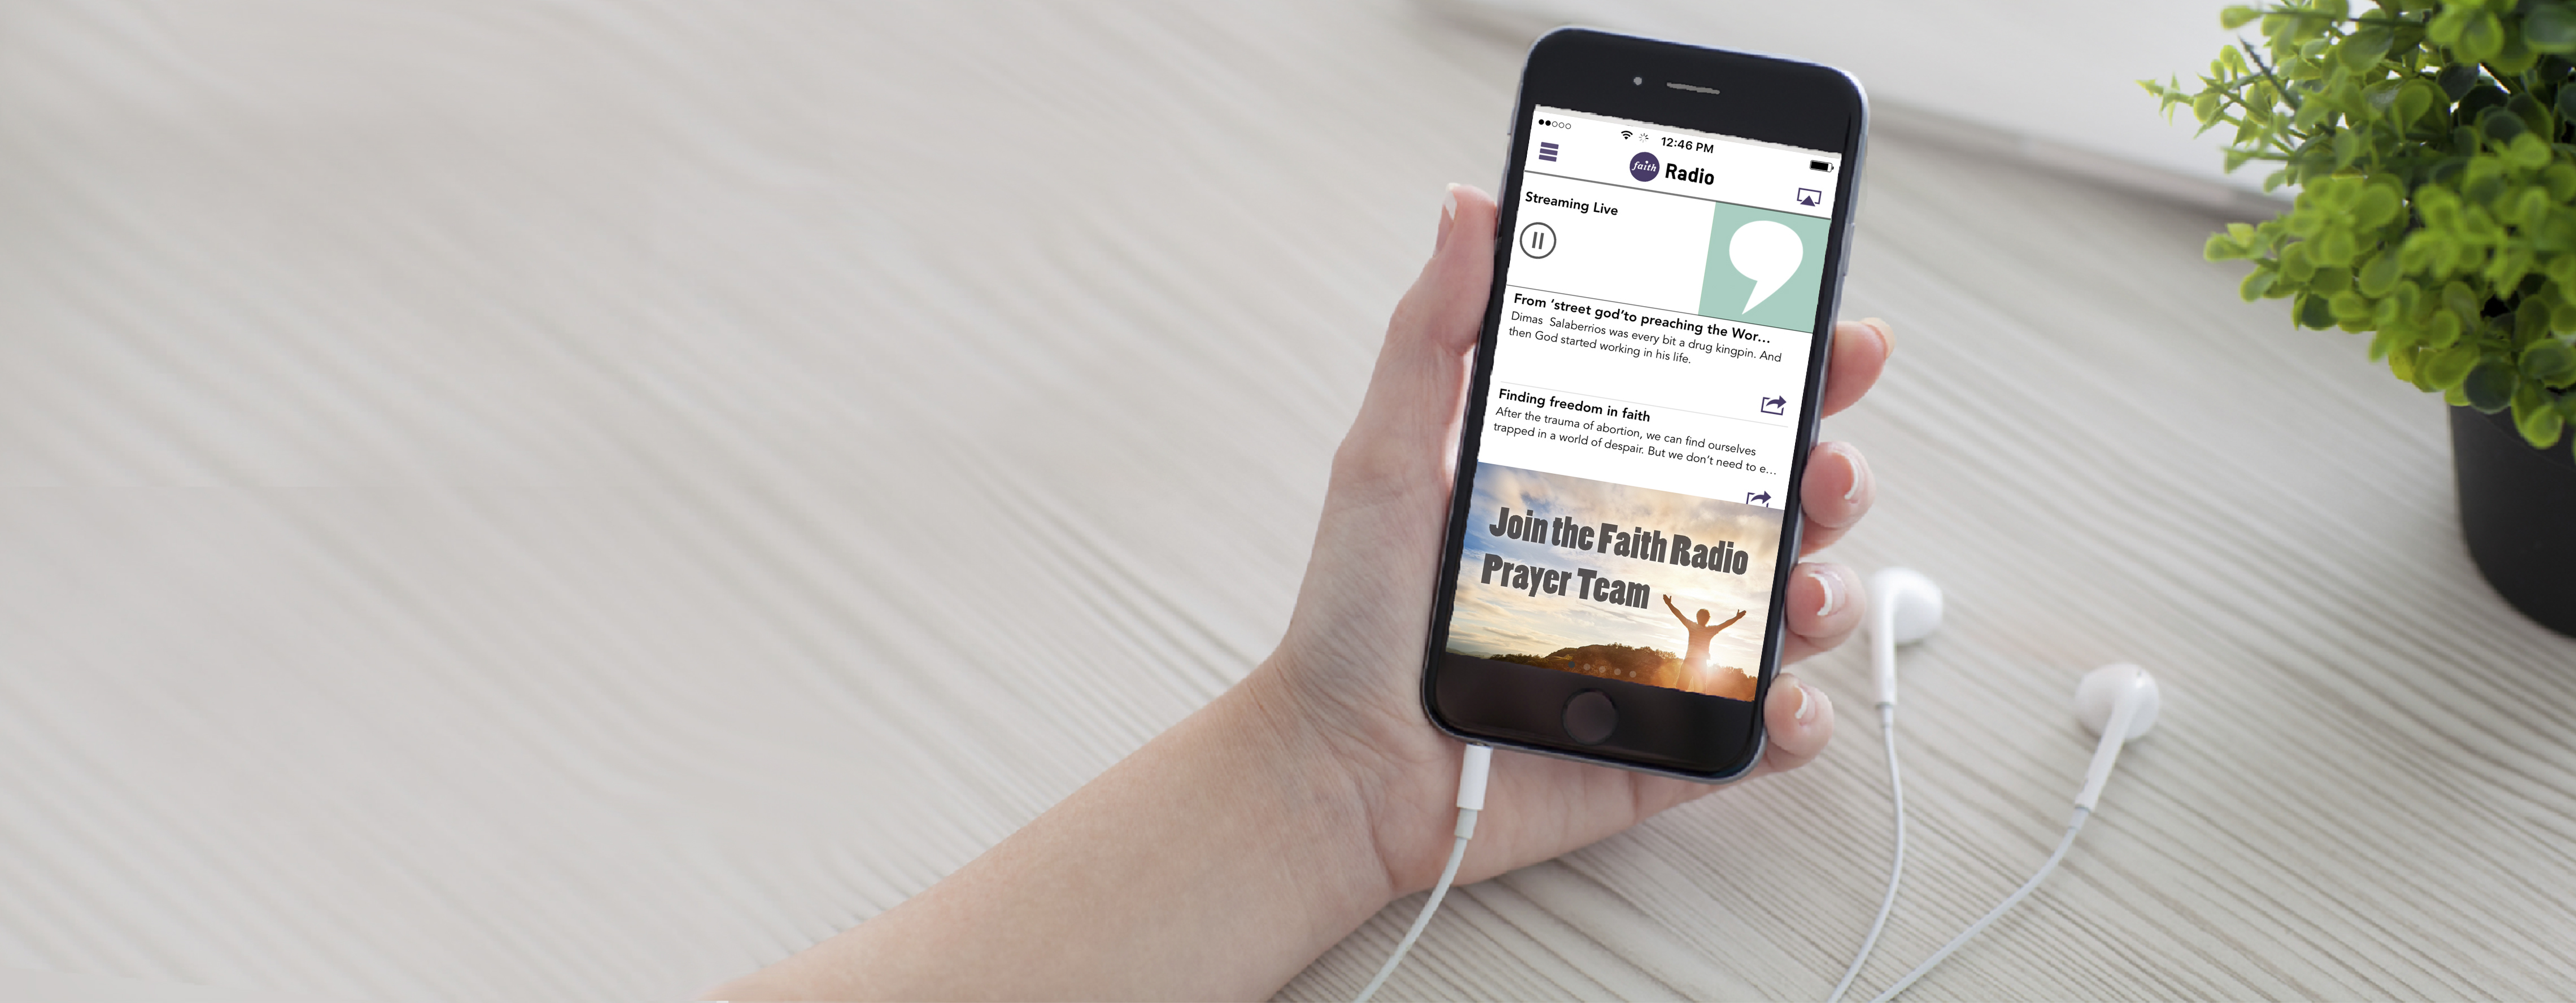 Woman holding iPhone 6 with the Faith Radio App on the screen